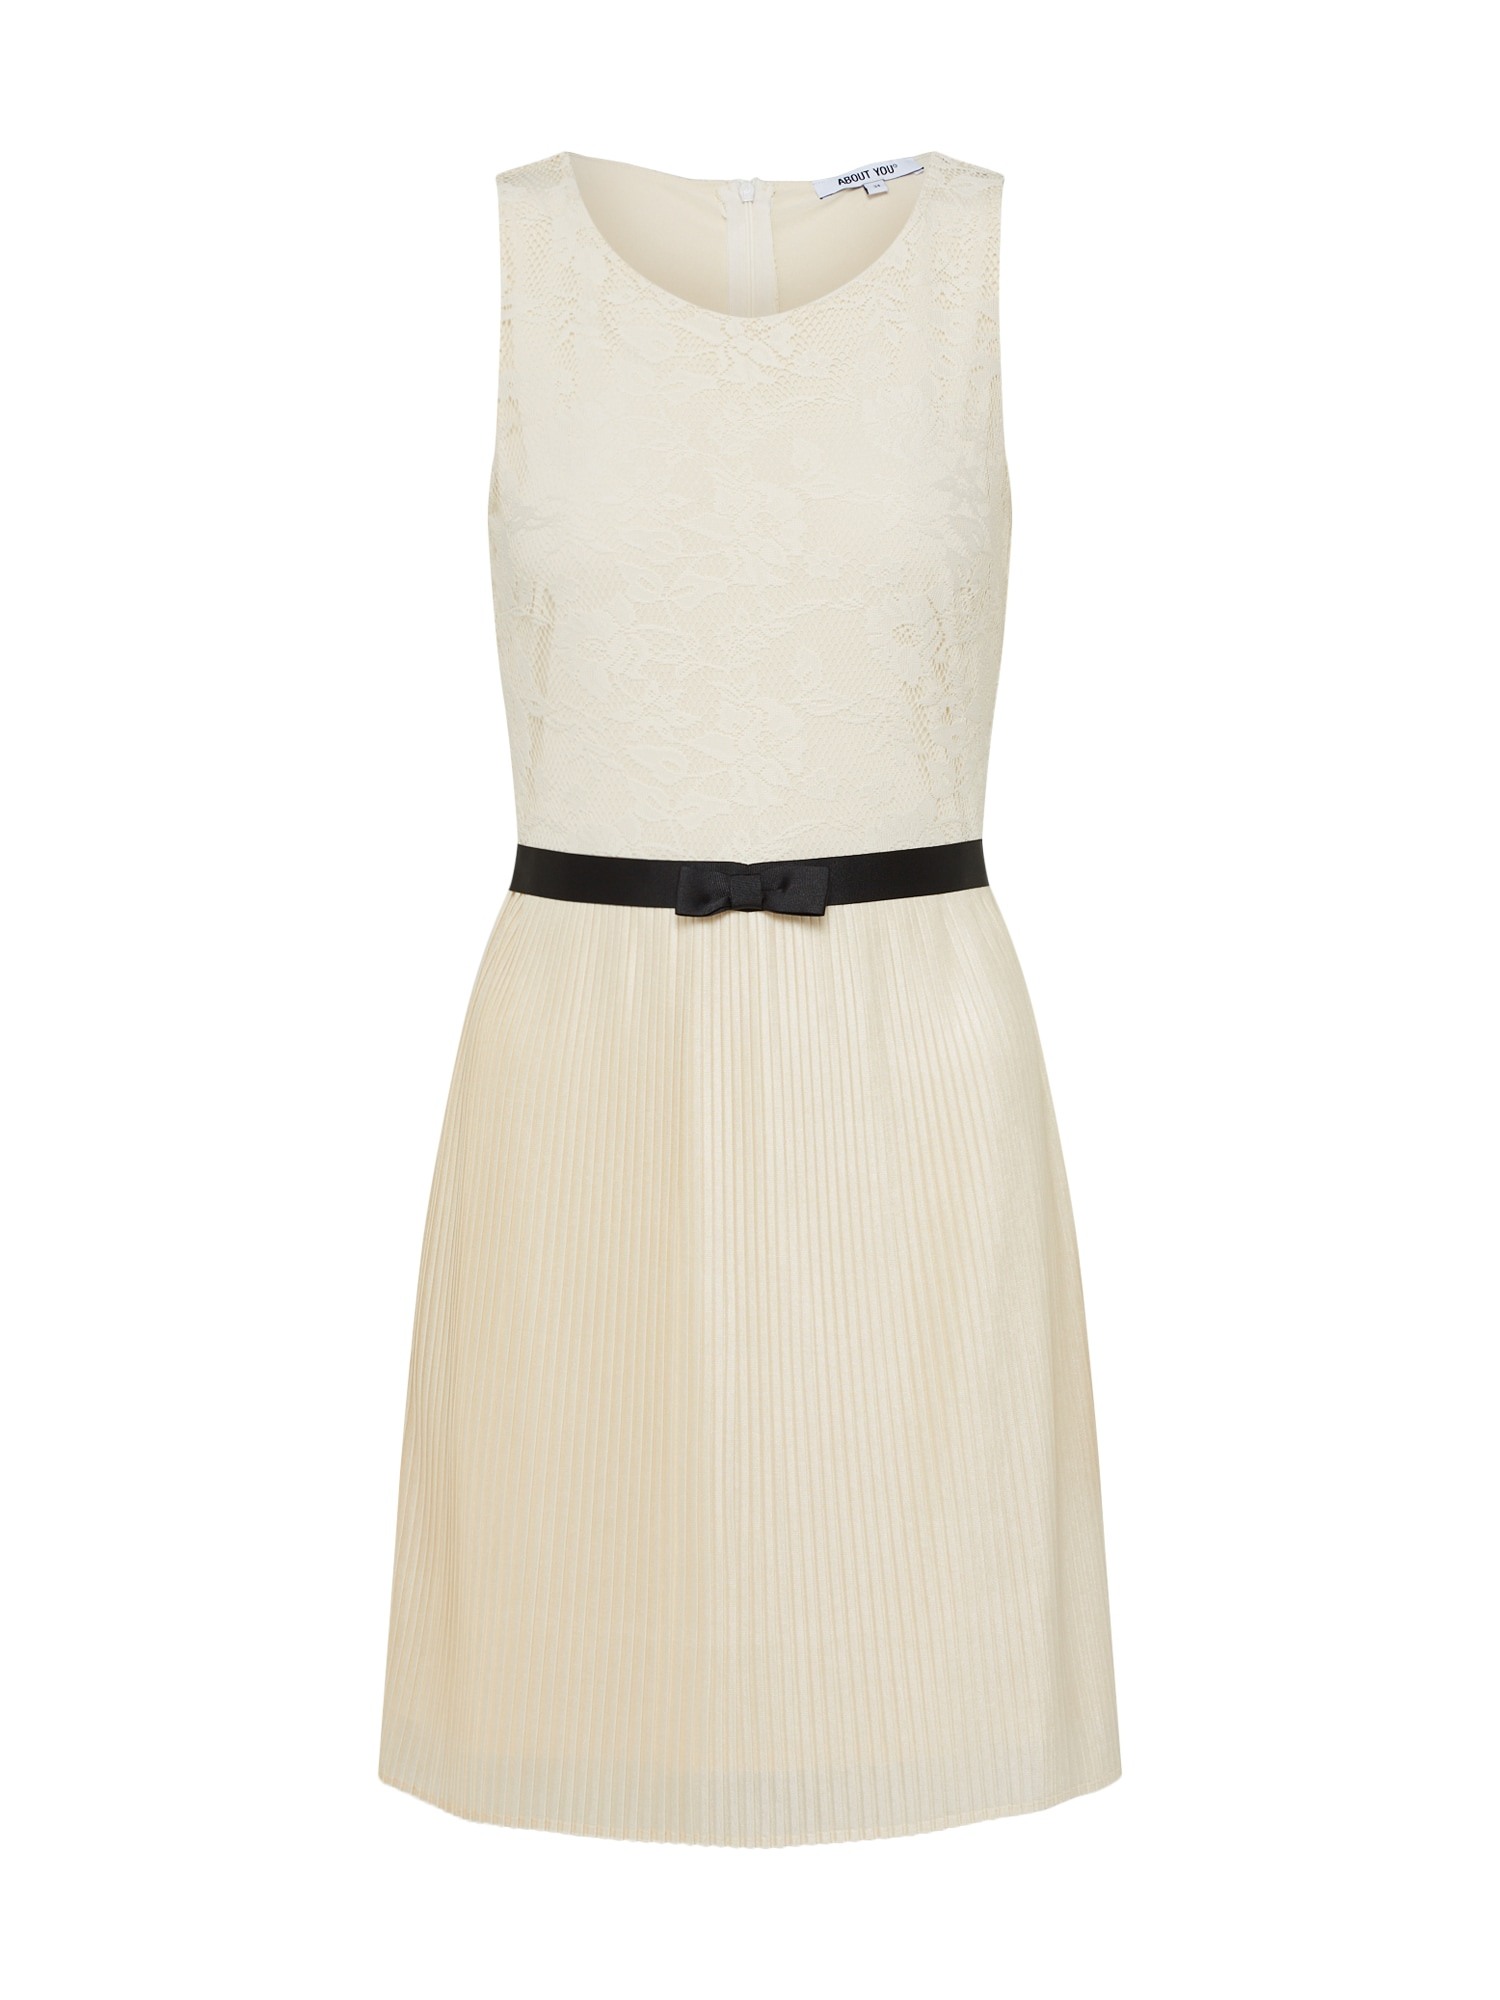 ABOUT YOU Cocktailjurk 'Viviana Dress' crème